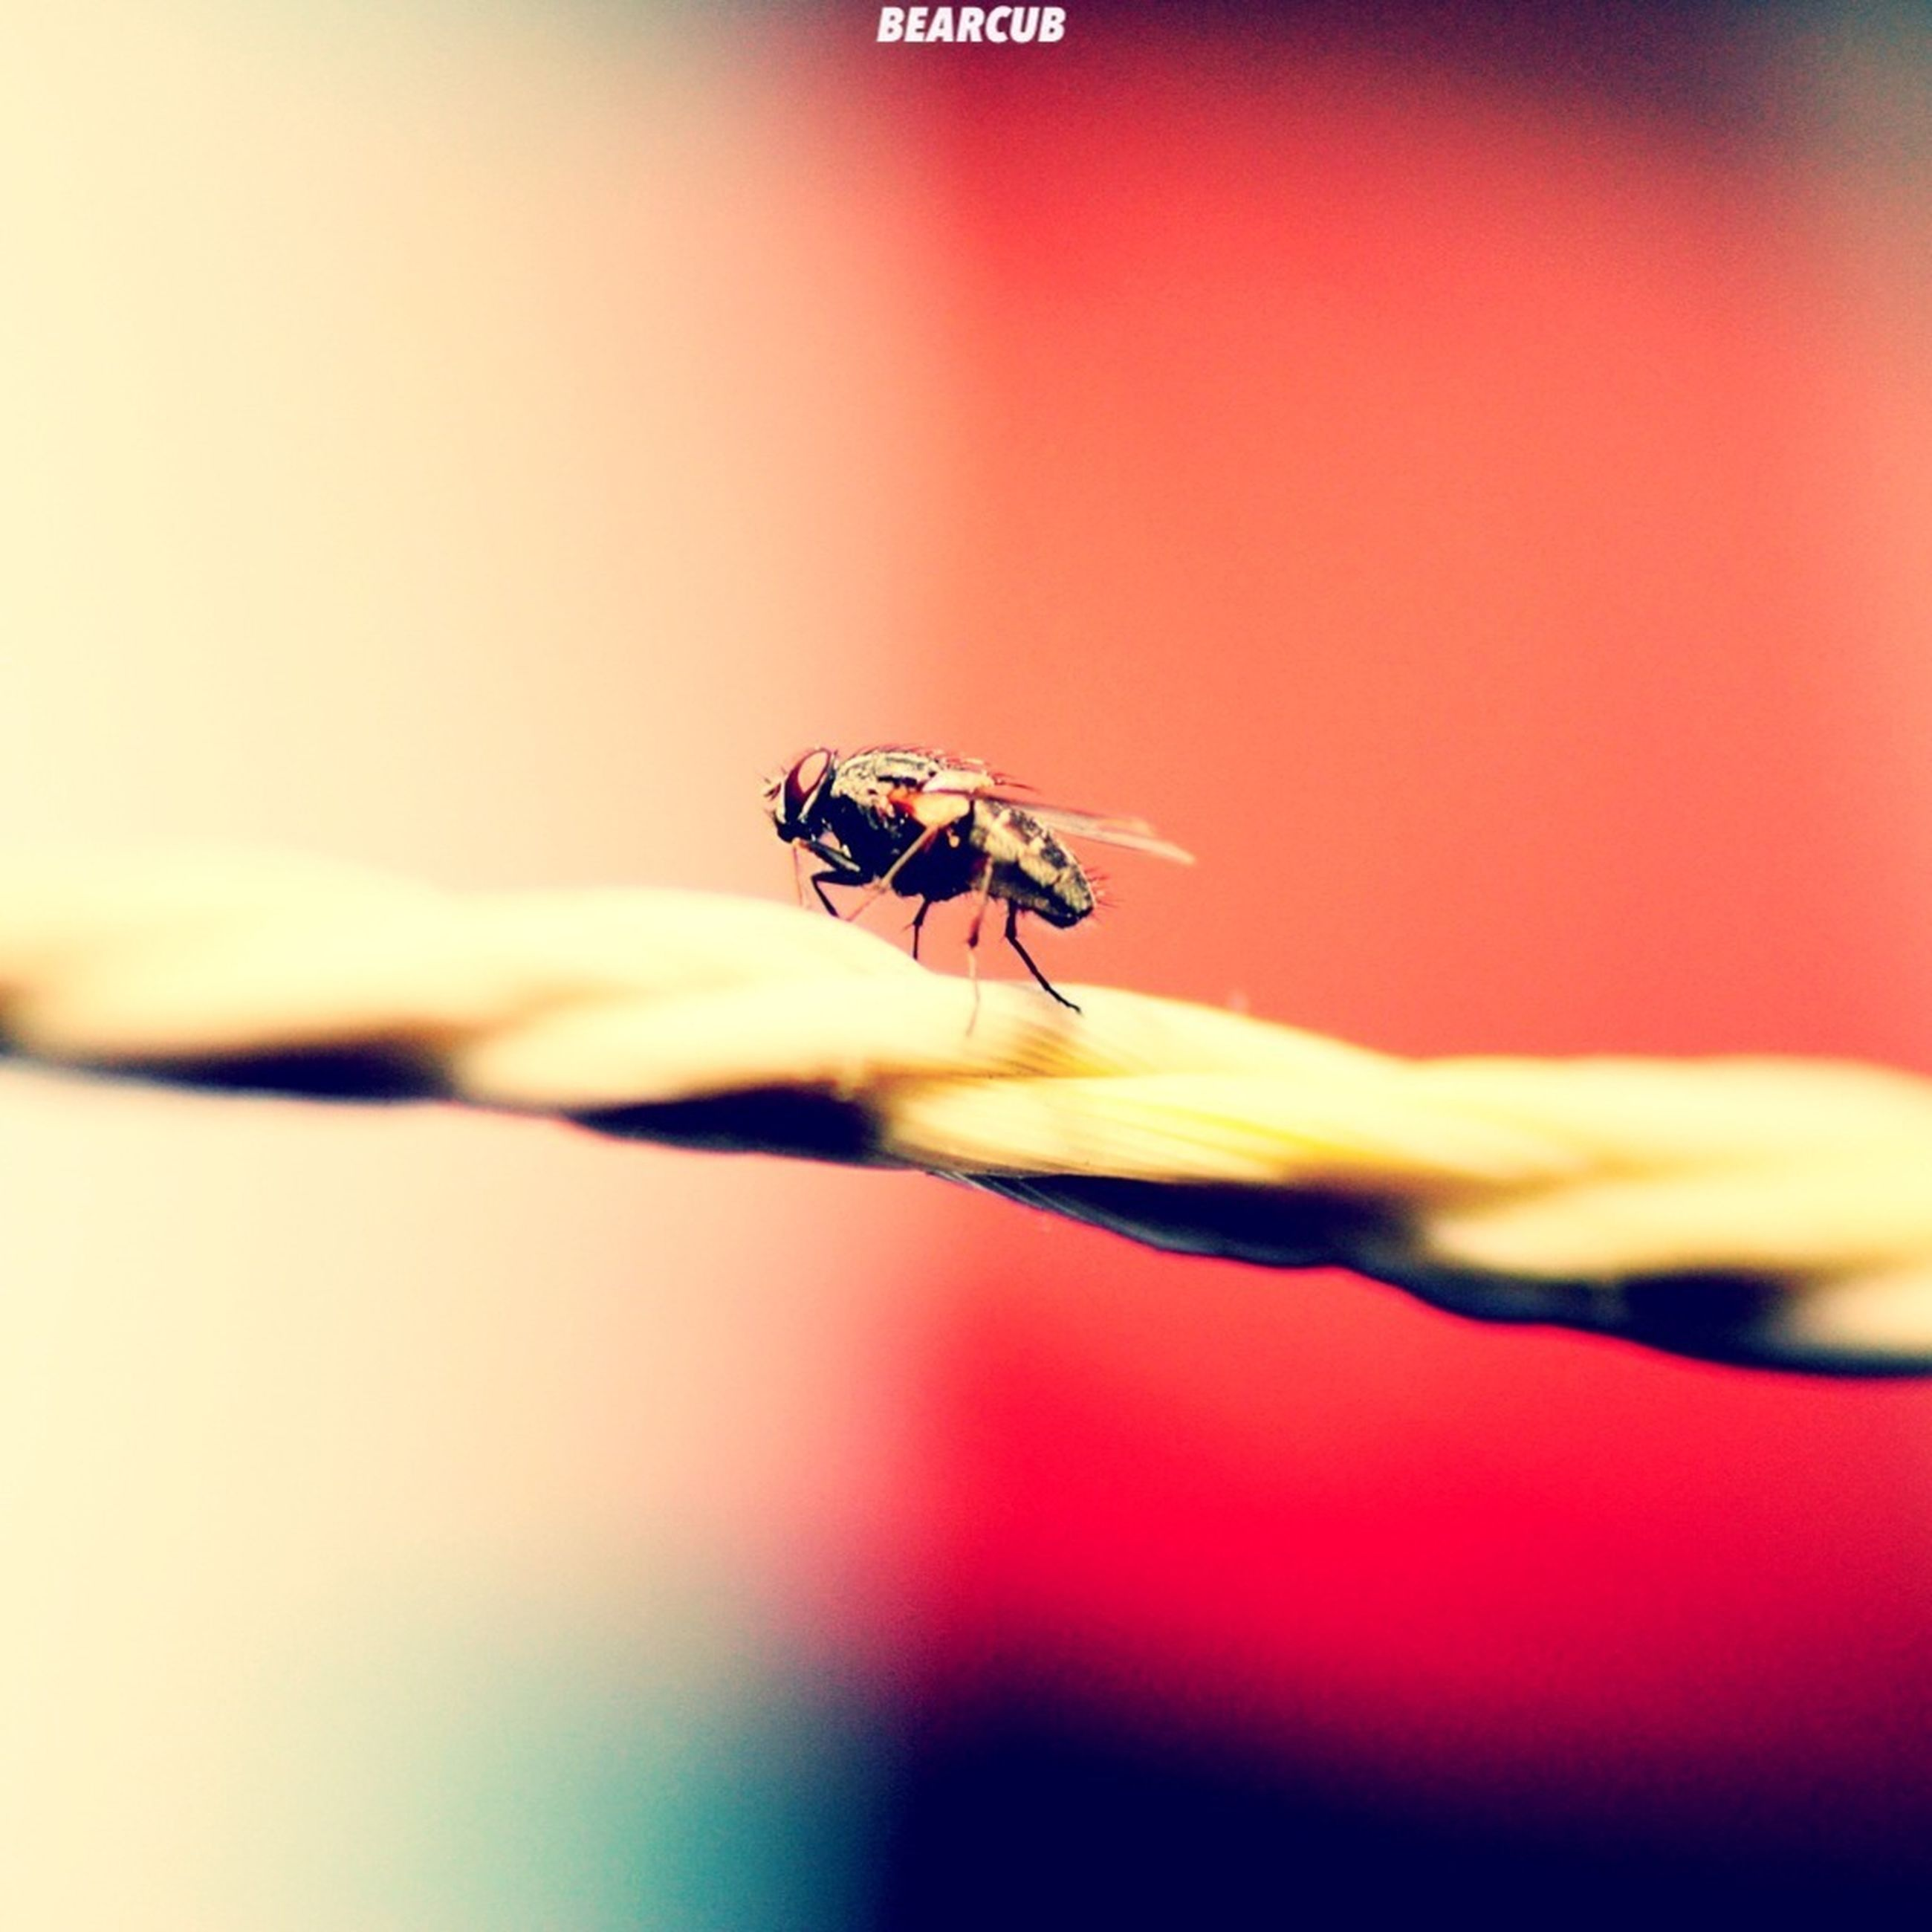 animal themes, insect, one animal, animals in the wild, wildlife, close-up, selective focus, focus on foreground, spider, indoors, nature, red, full length, arthropod, wall - building feature, no people, stem, copy space, orange color, zoology